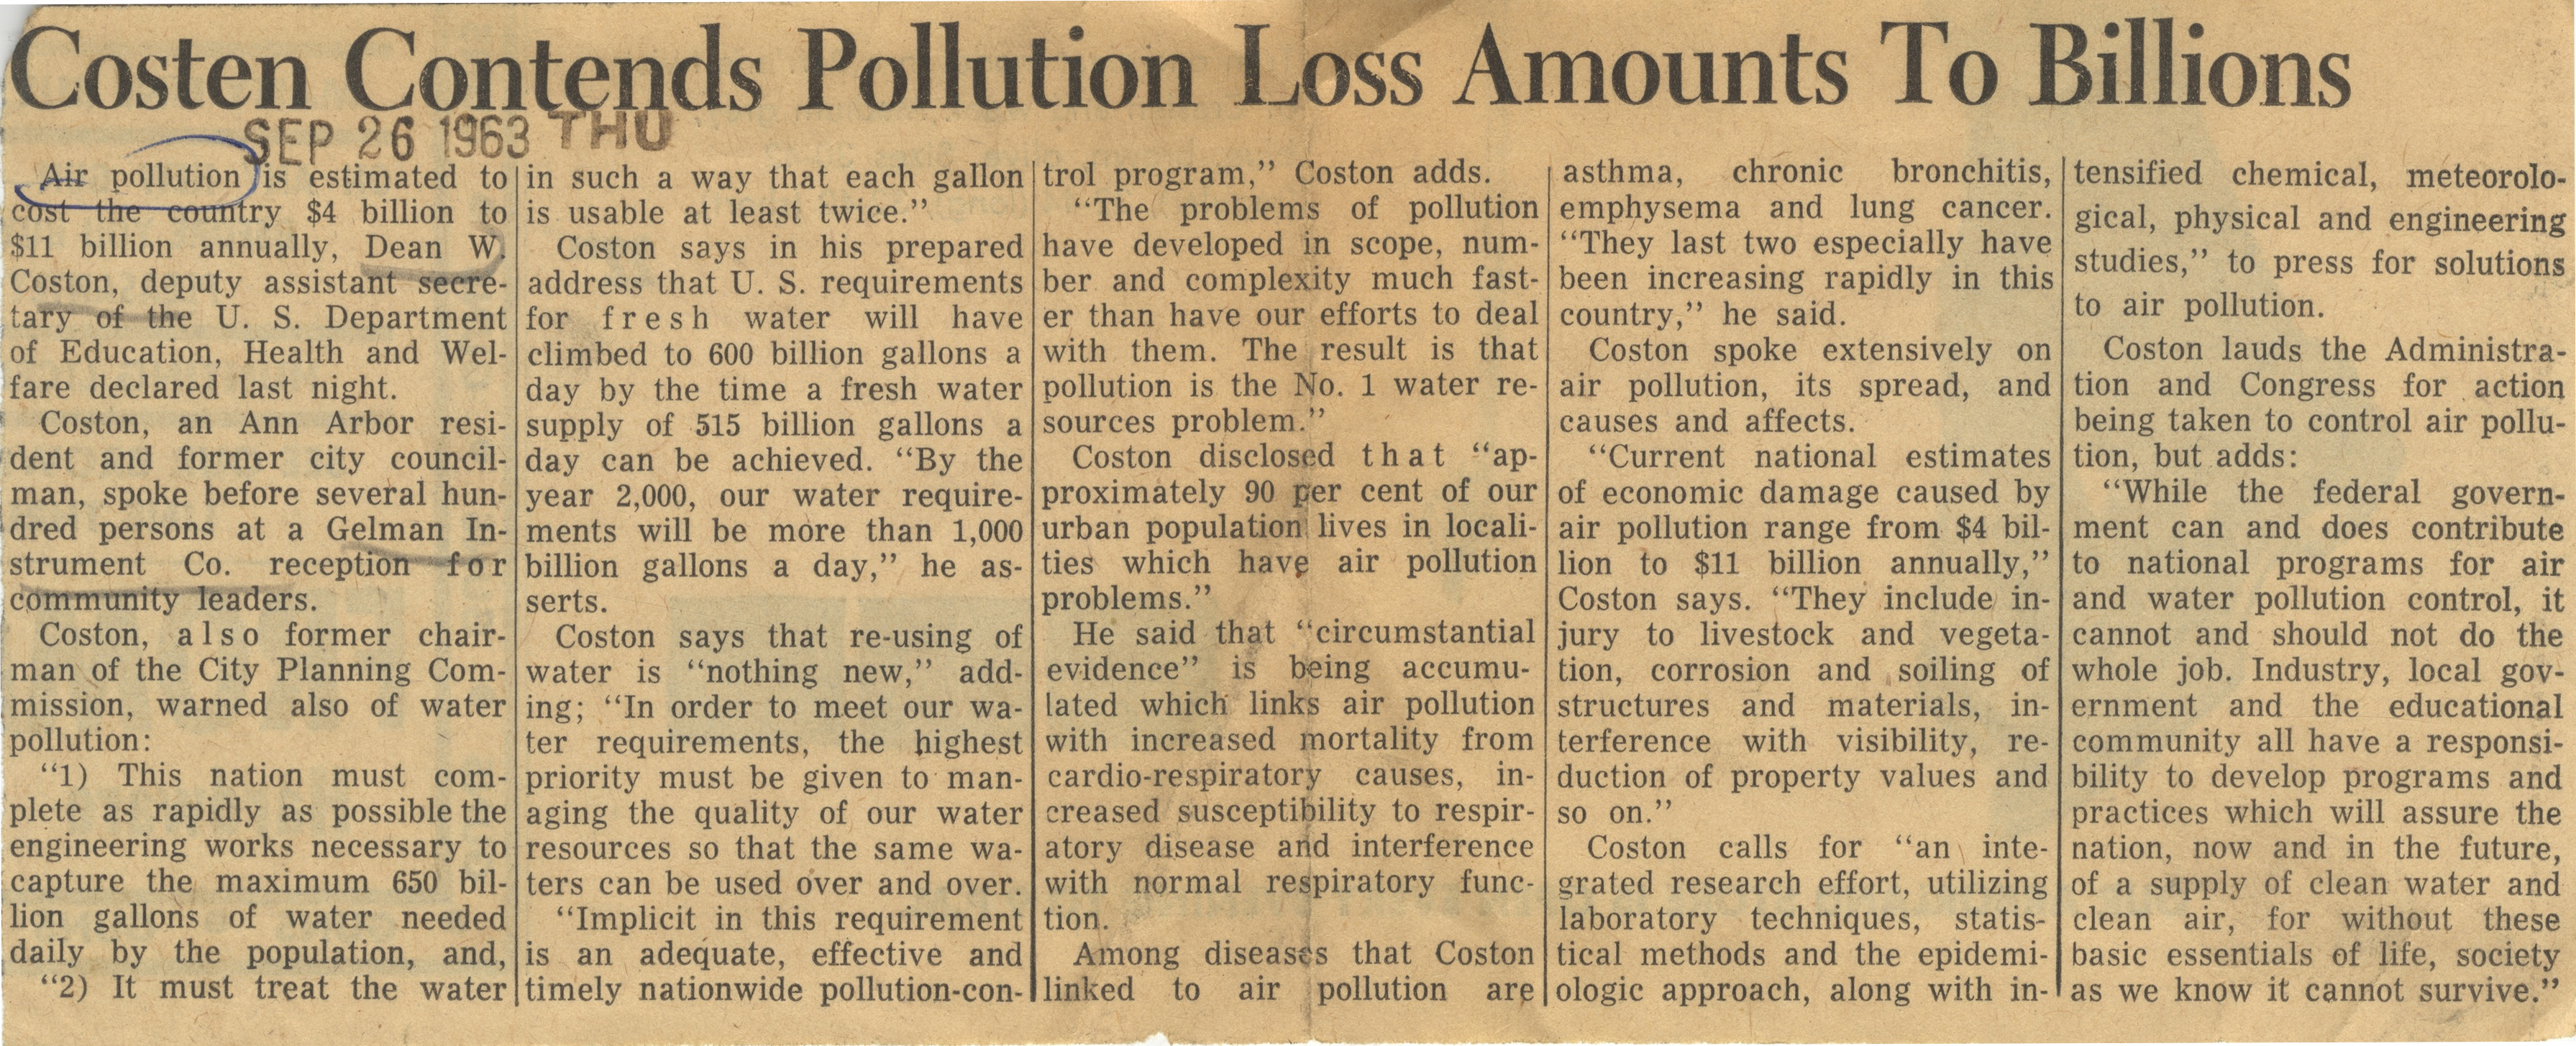 Costen Contends Pollution Loss Amounts To Billions image